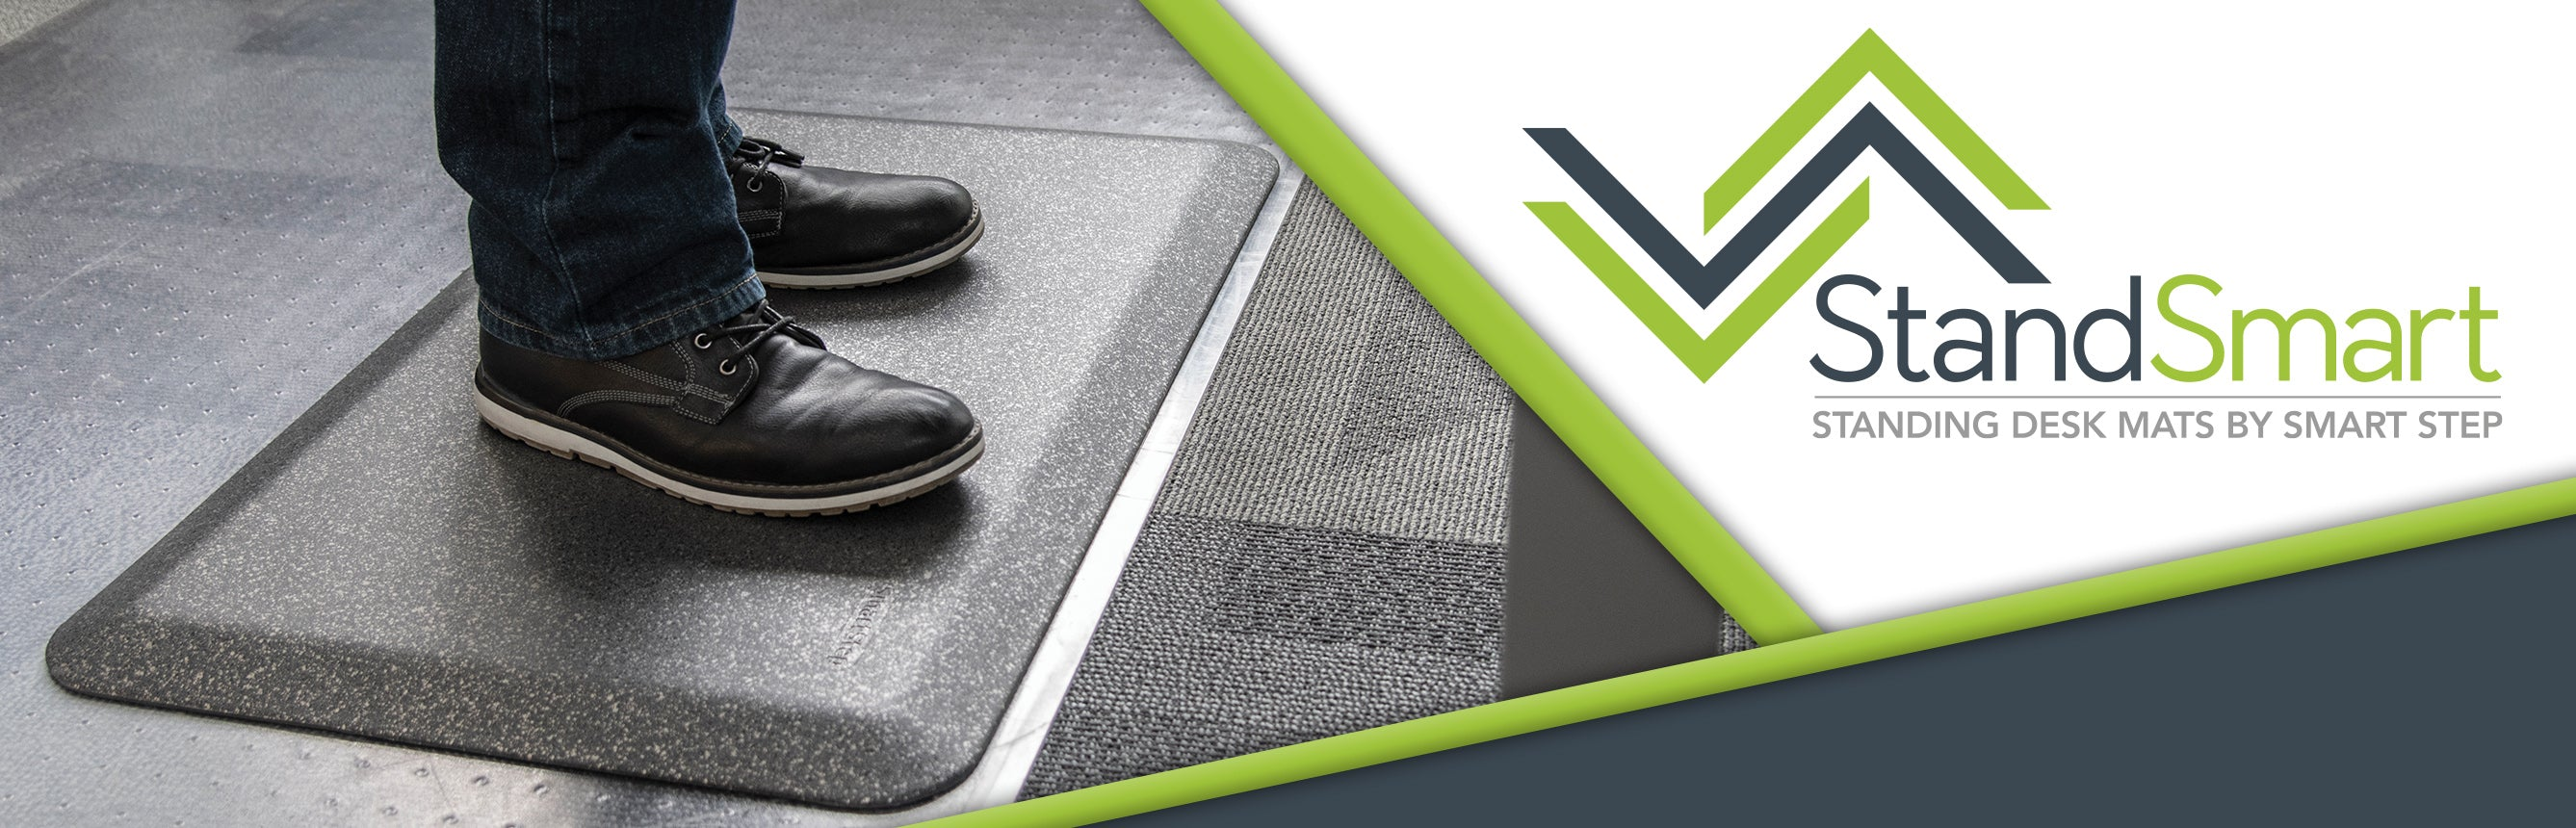 Stand Smart - Standing Desk Mats by Smart Step